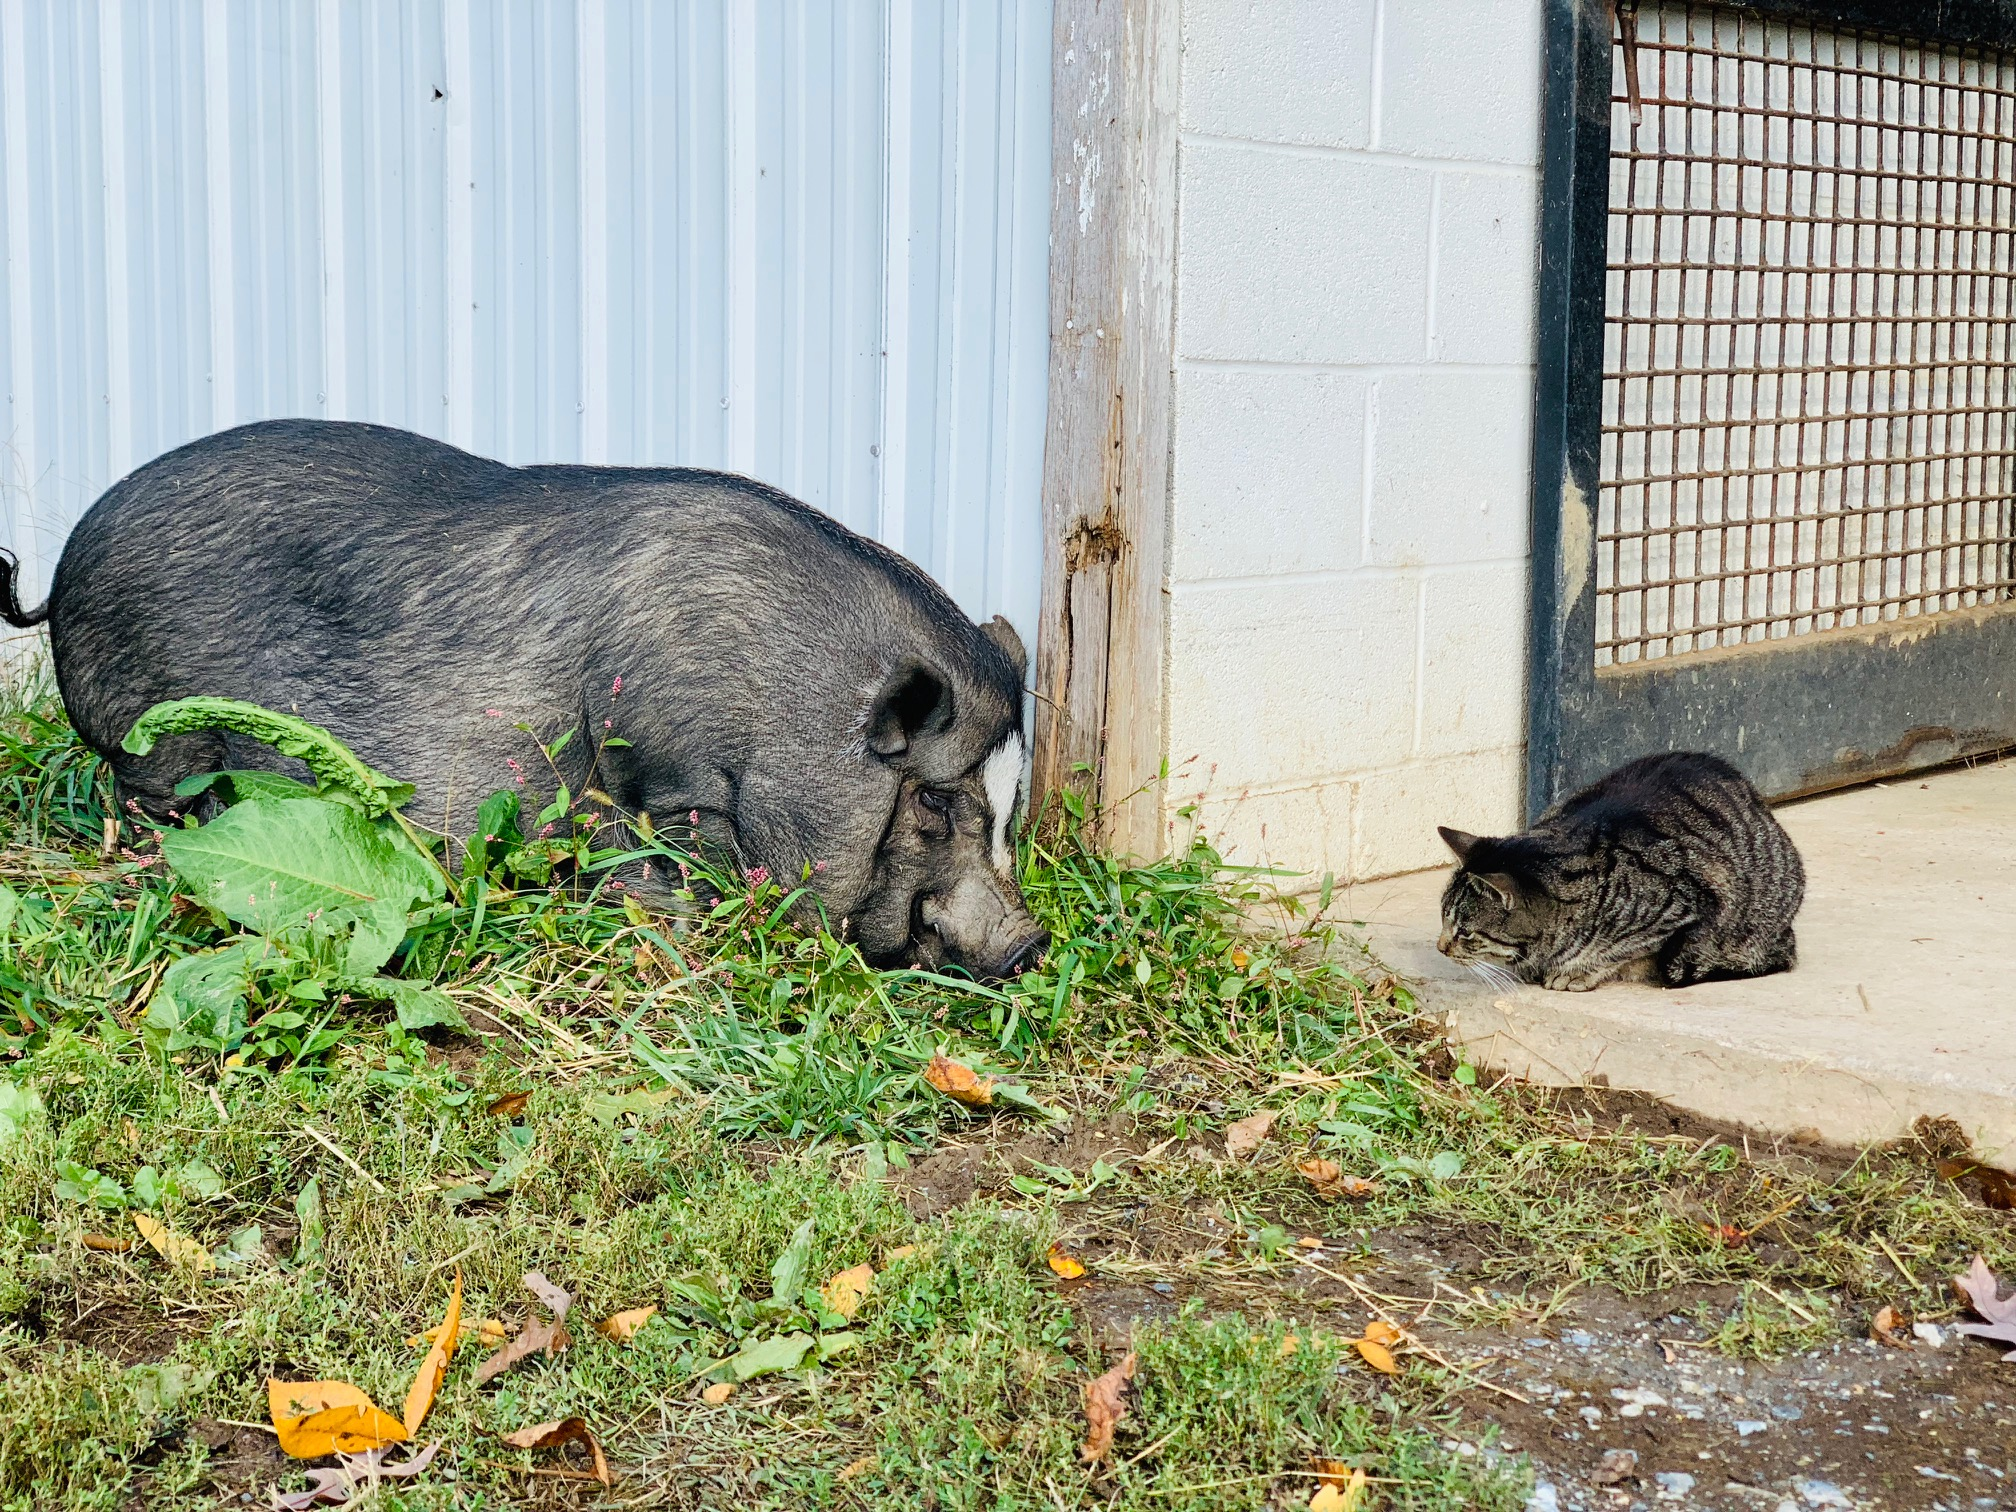 Bugatti isn't sure about Petunia the pig hanging out in her barn.